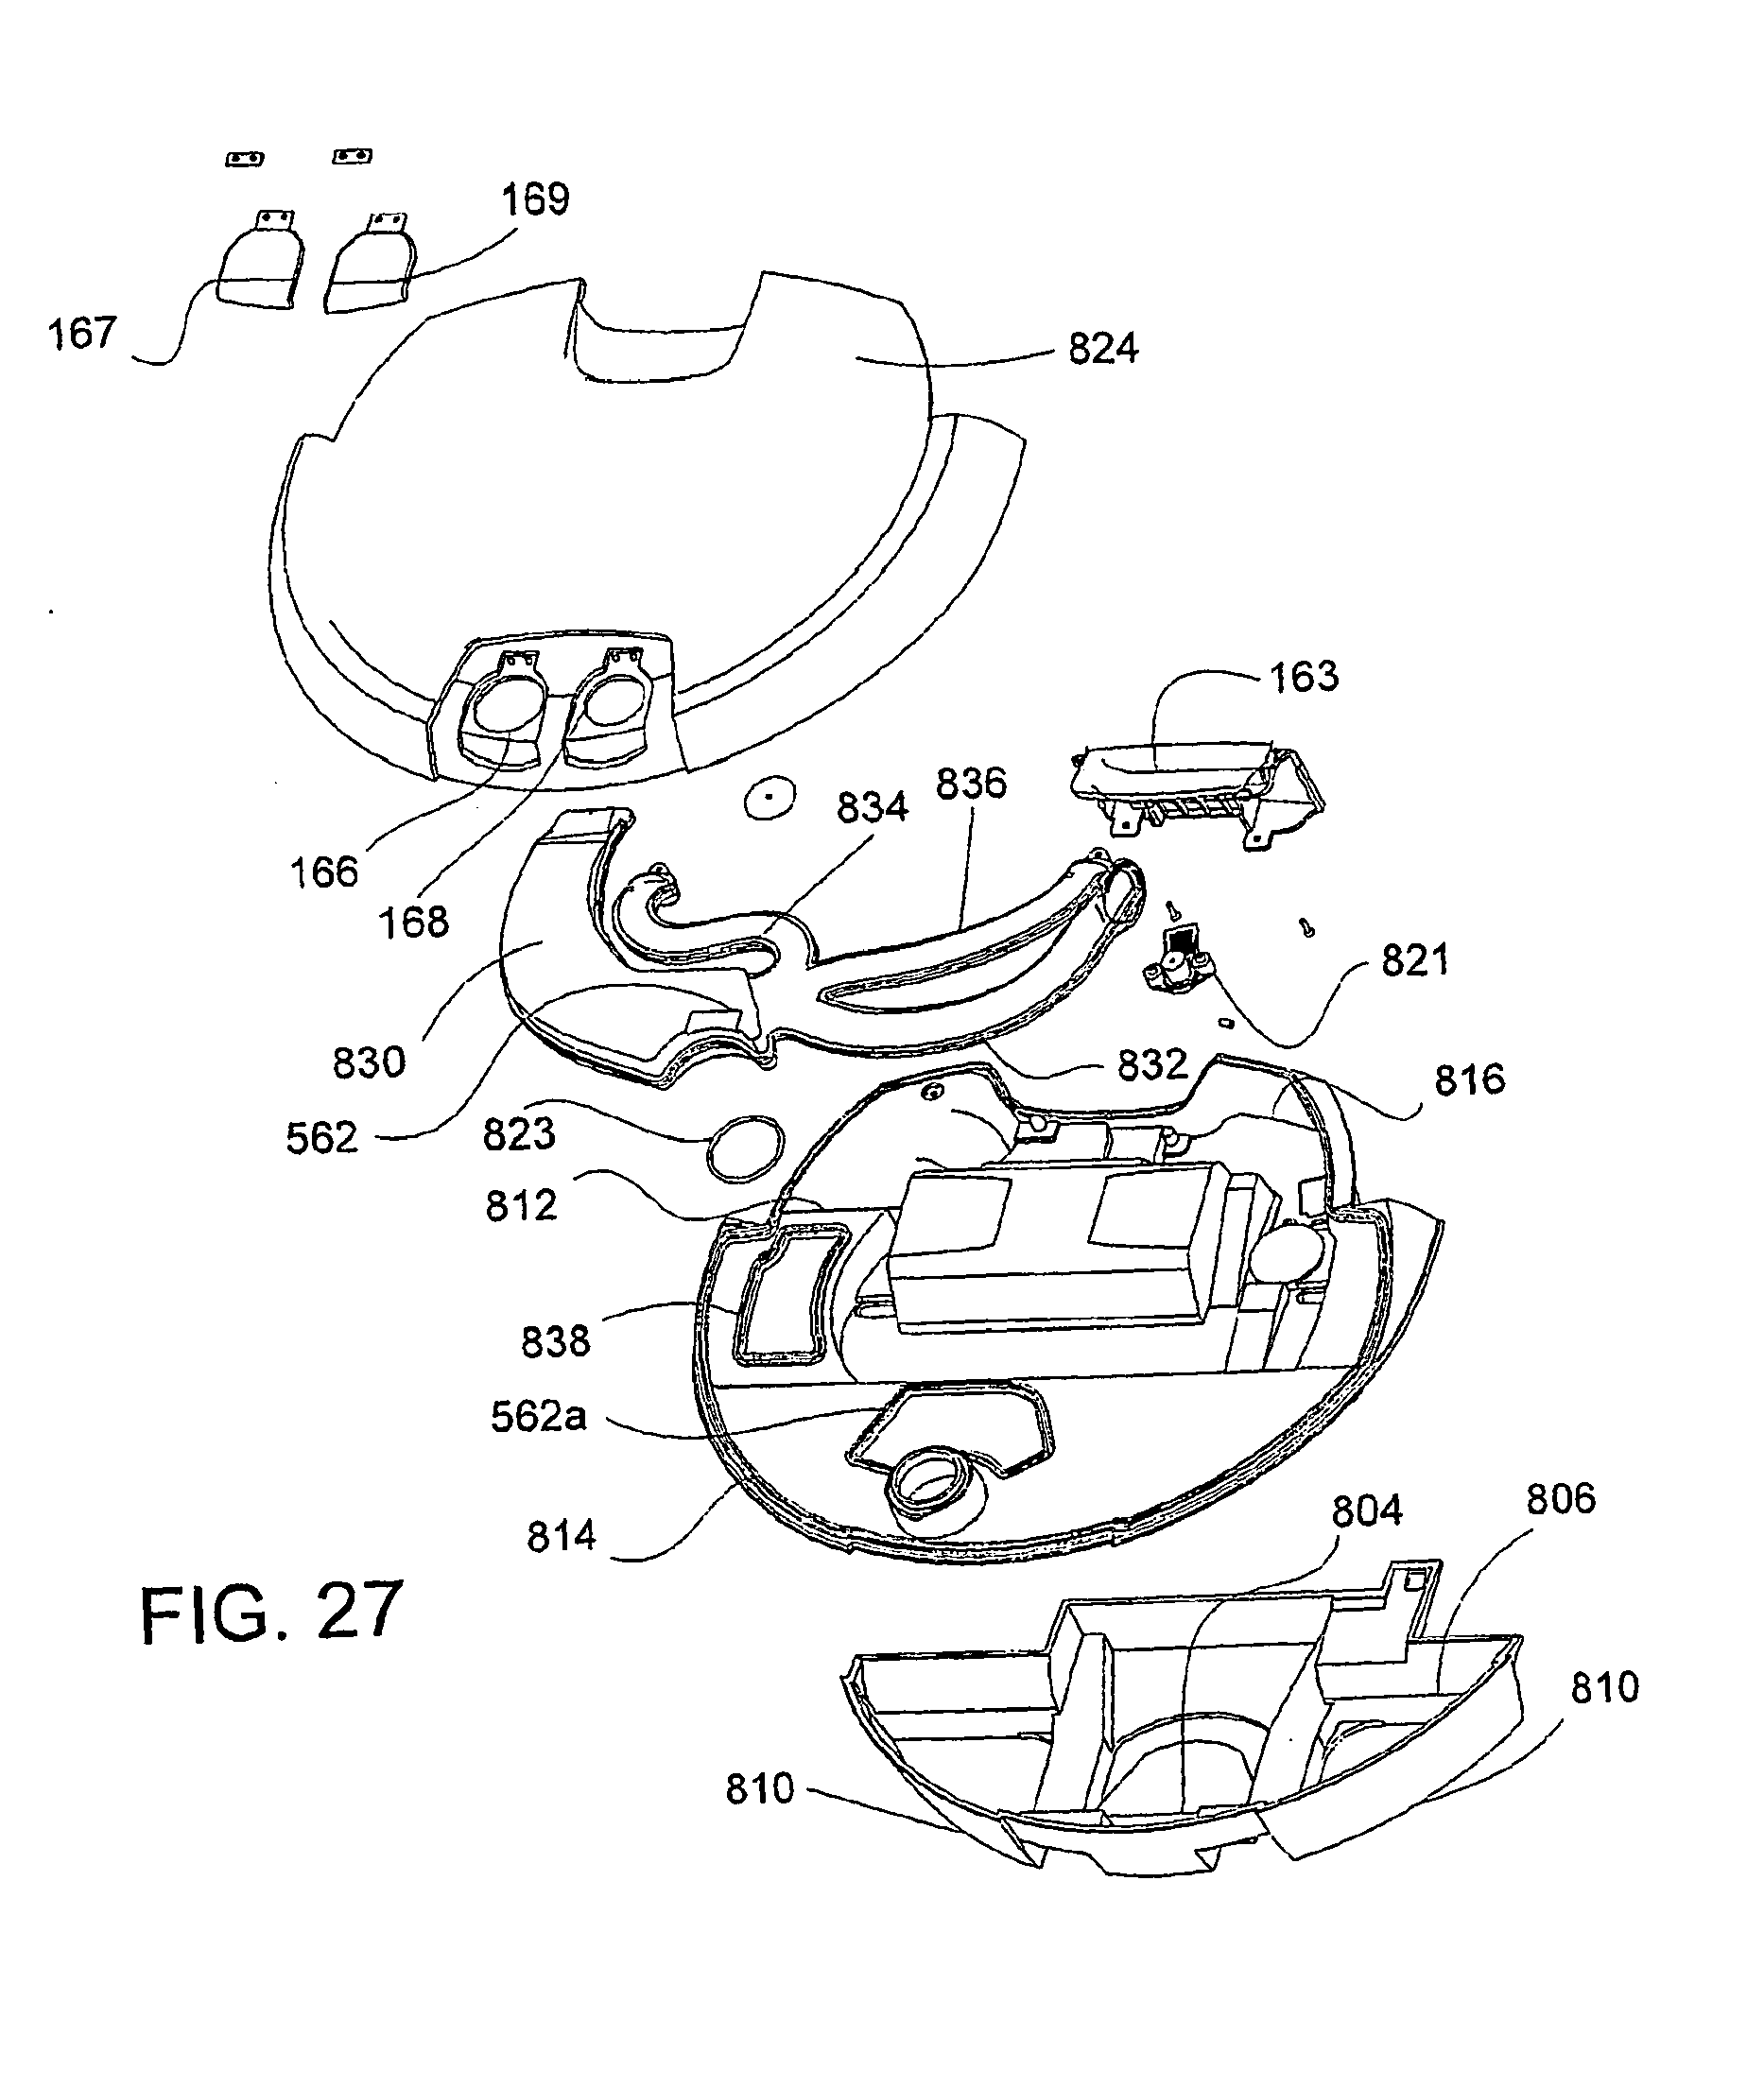 Ep2279686b1 autonomous surface cleaning robot for wet and dry cleaning patents